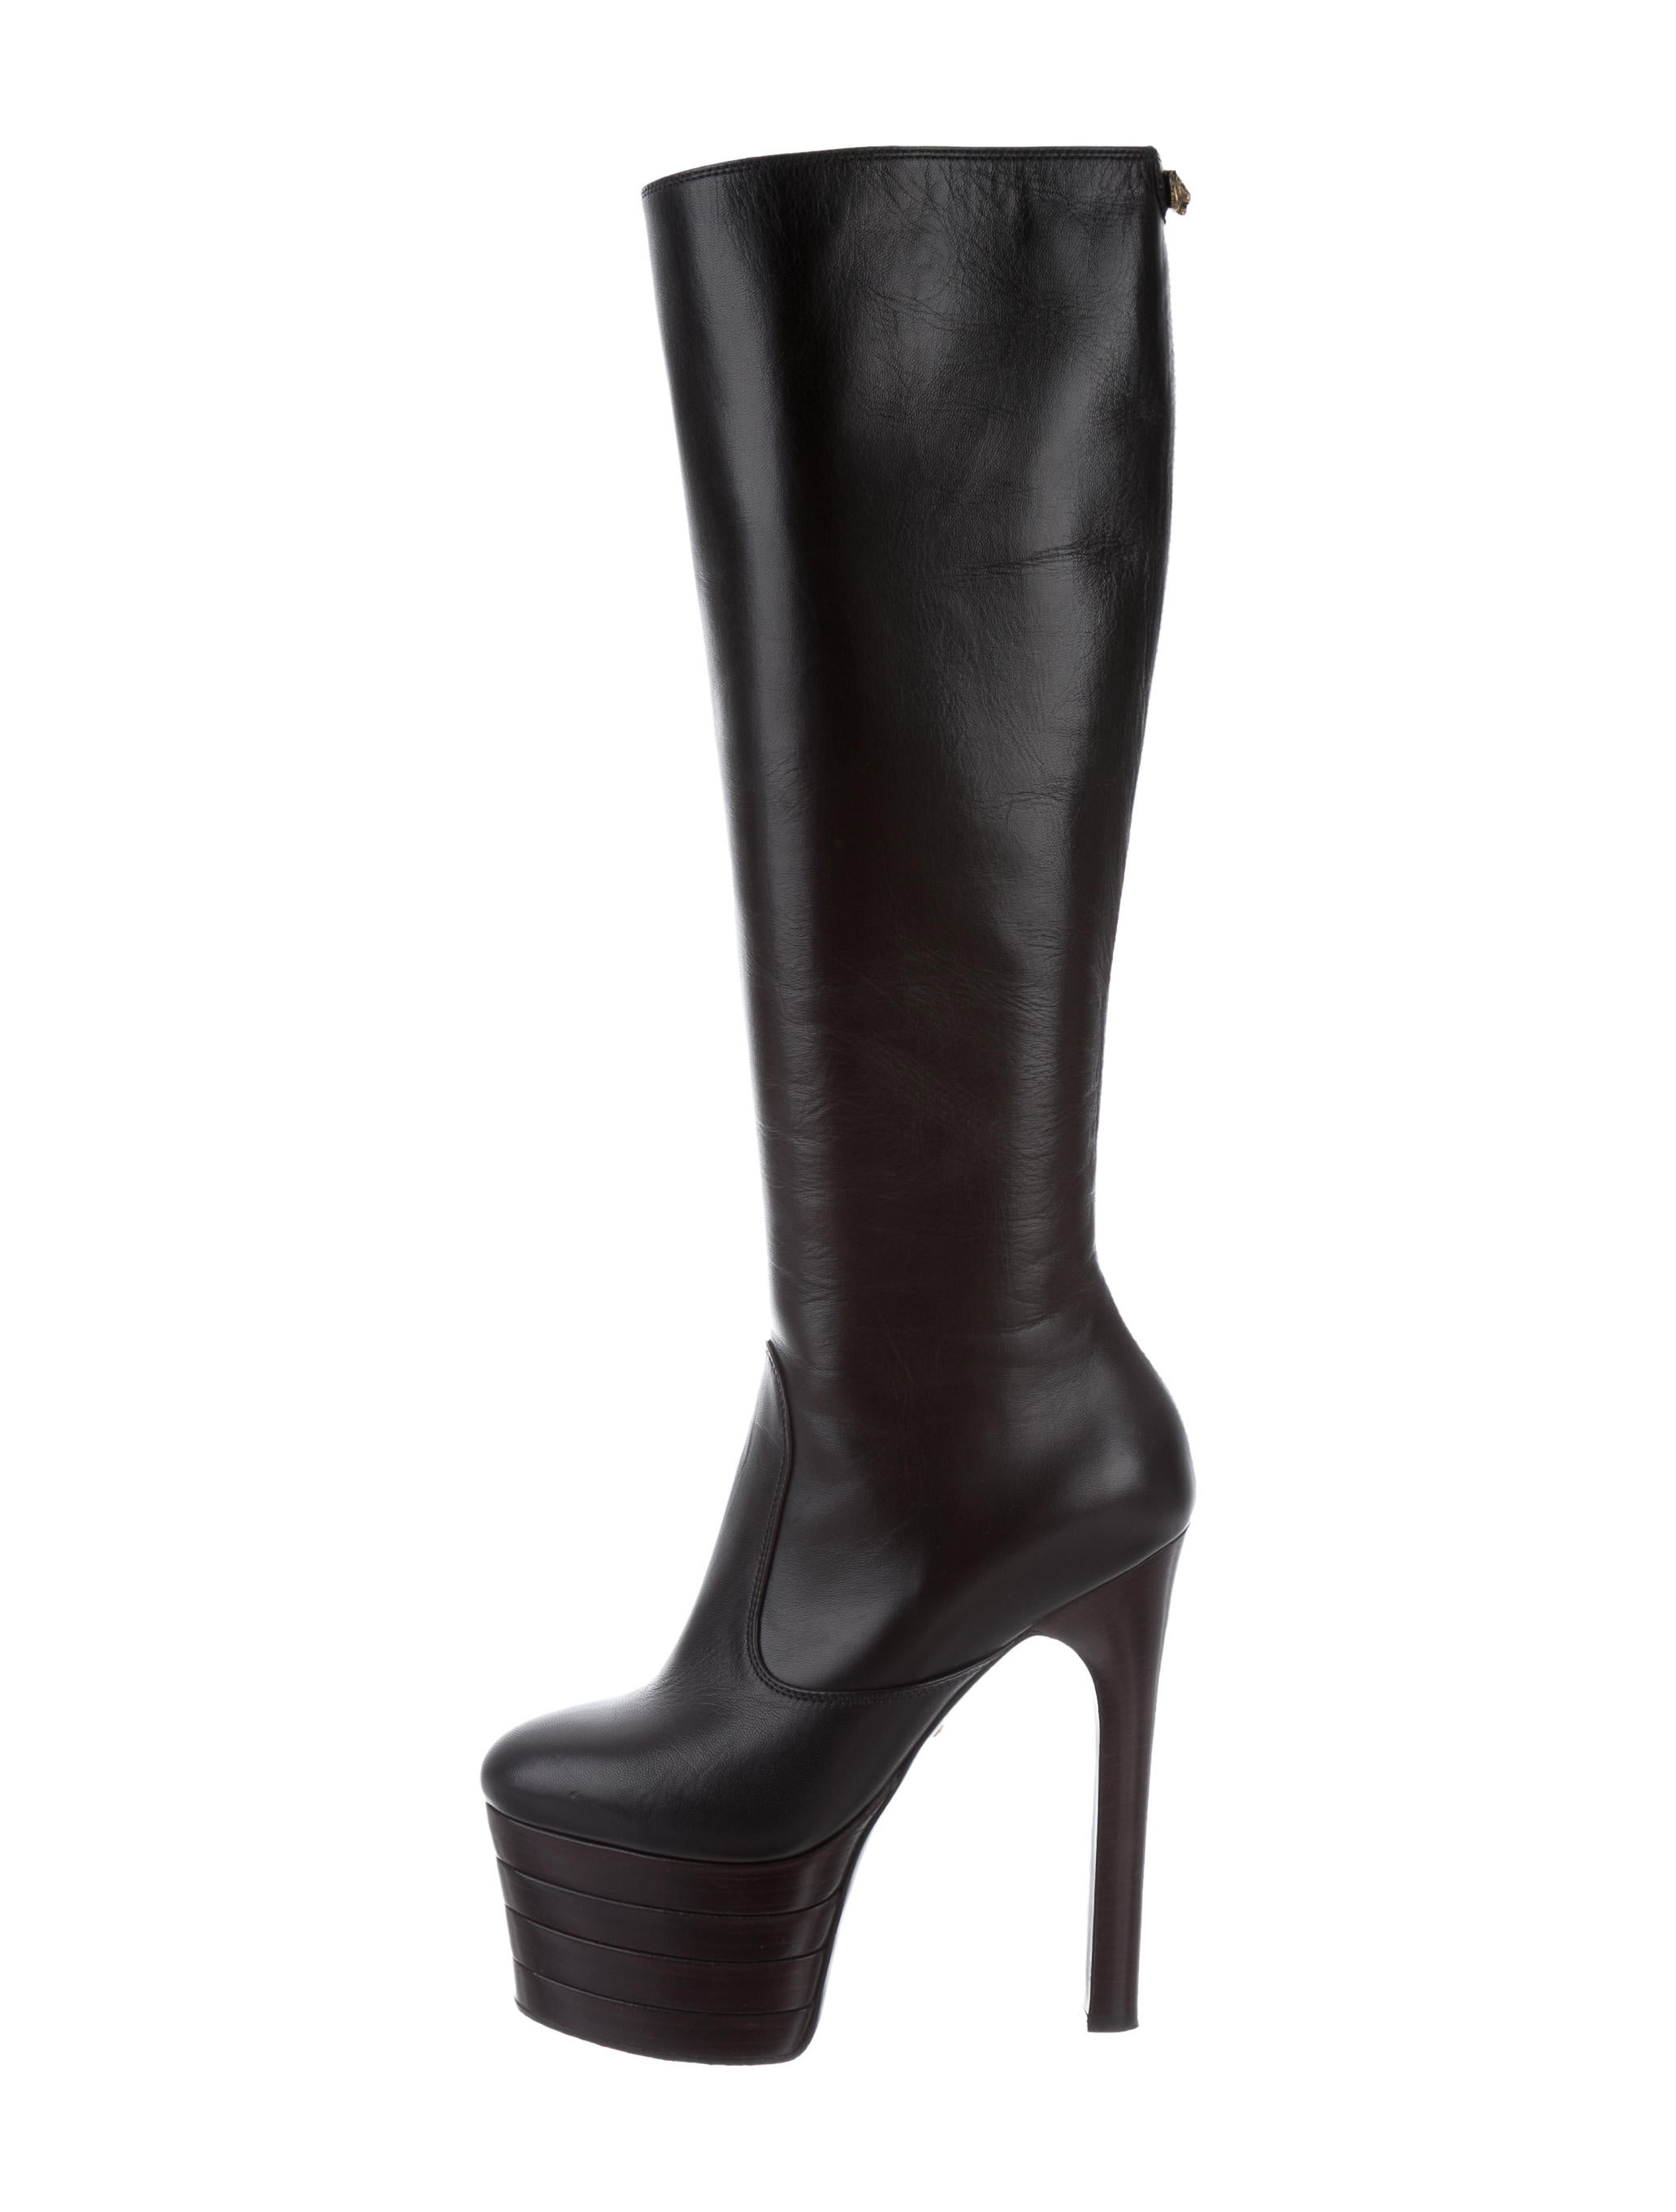 gucci knee high platform boots shoes guc156749 the